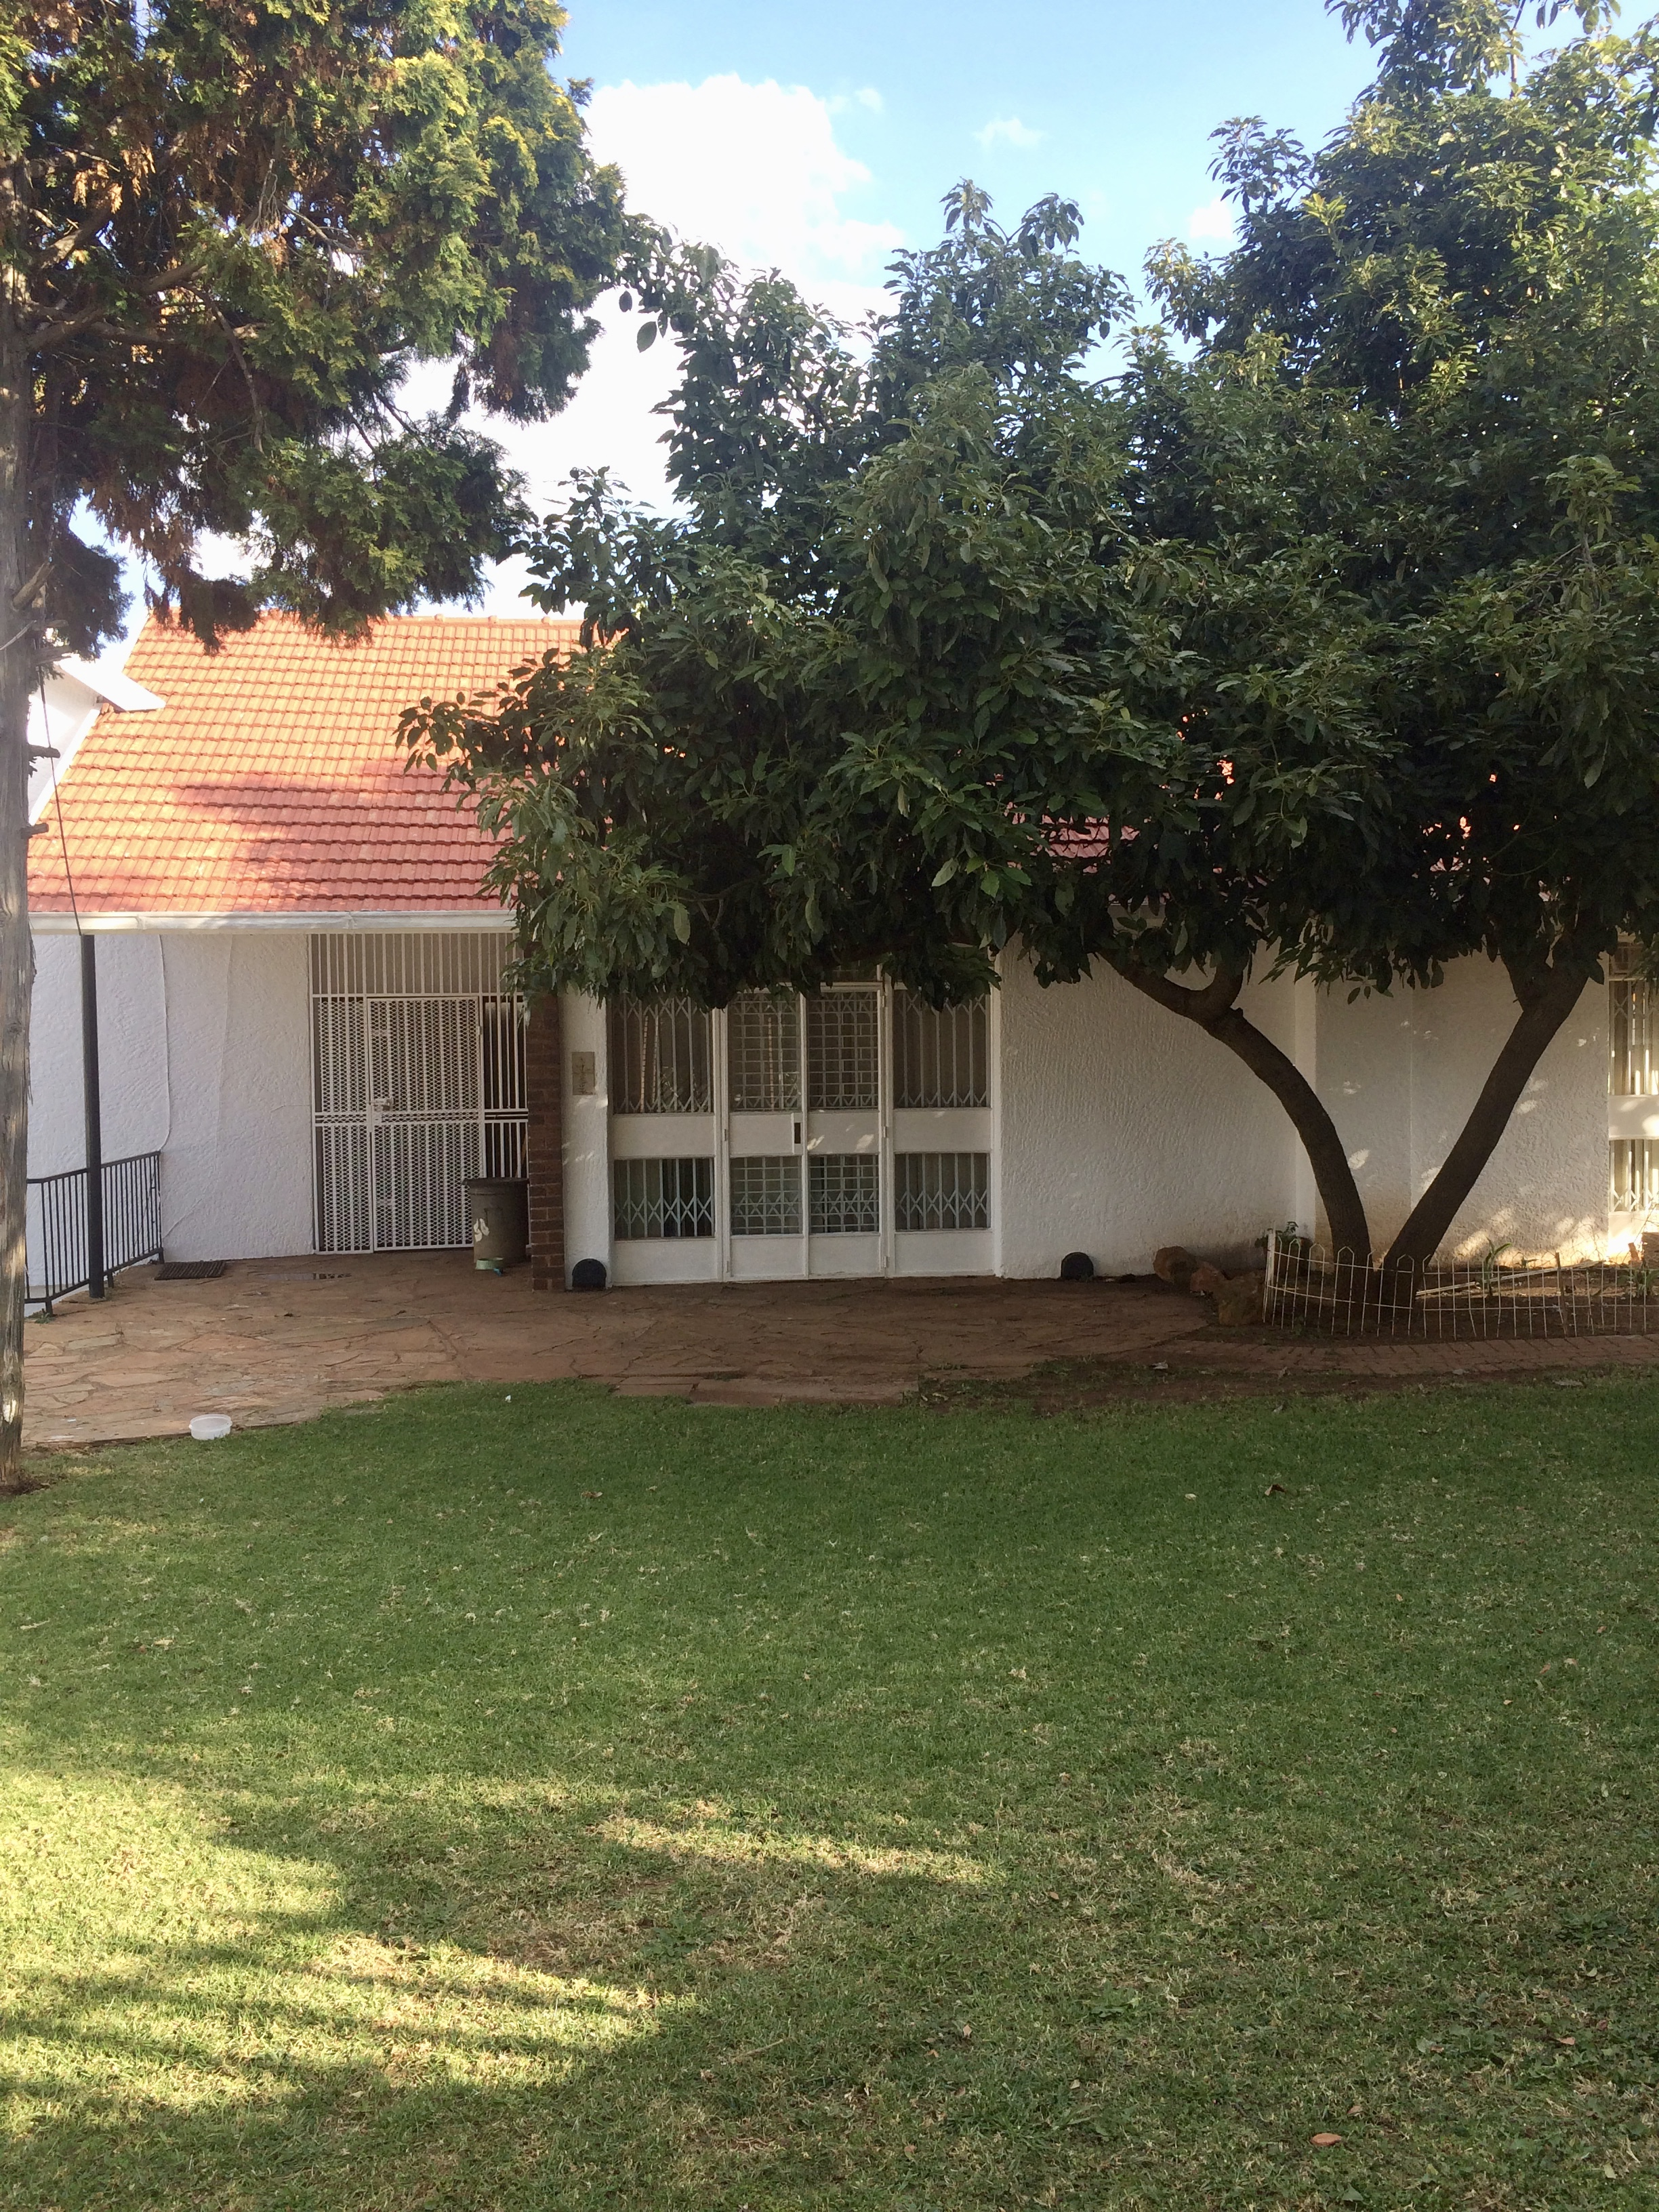 30 Da Gama, De wetshof Johannesburg, Gauteng, 3 Bedrooms Bedrooms, ,3 BathroomsBathrooms,House,For sale,Da Gama,1034